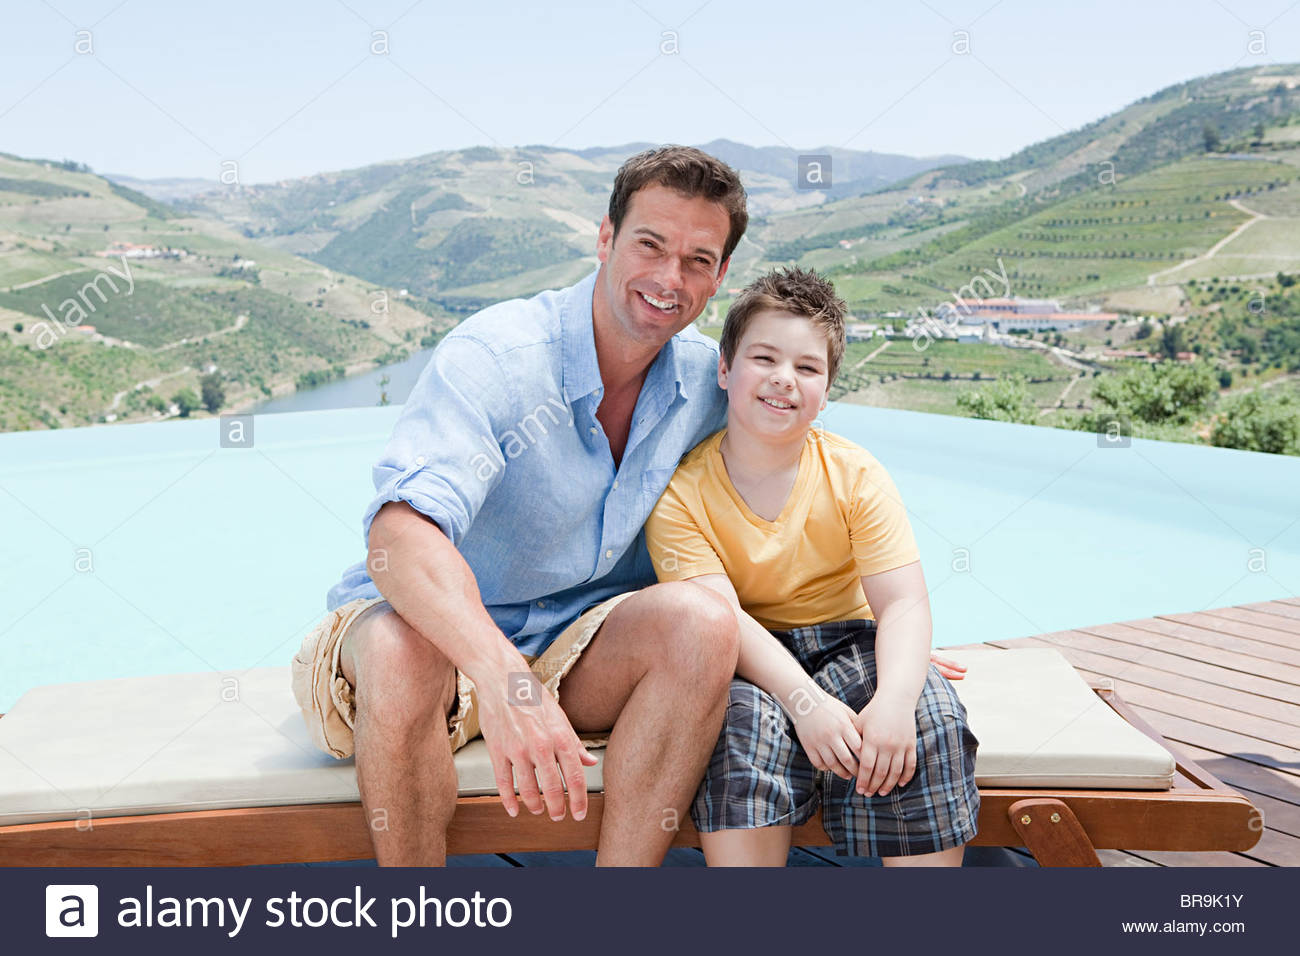 Father and son on holiday - Stock Image